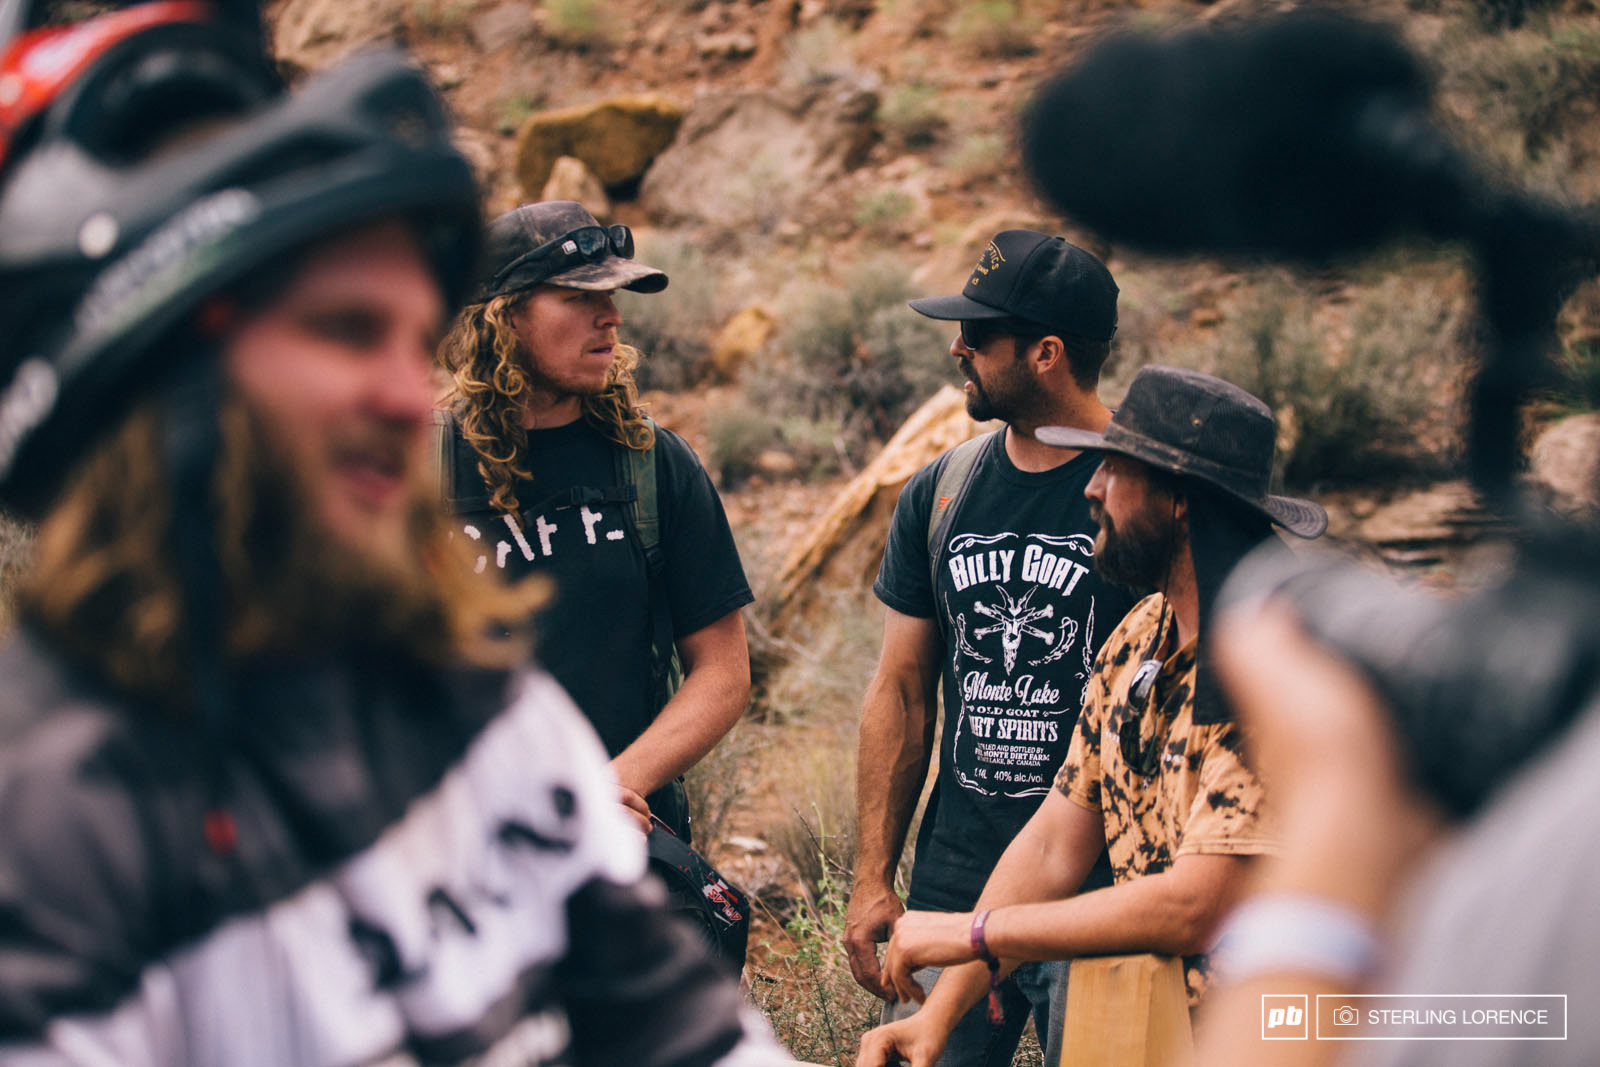 Taylor Brad and Ron make quite the team with Aggy at RedBull Rampage 2014.